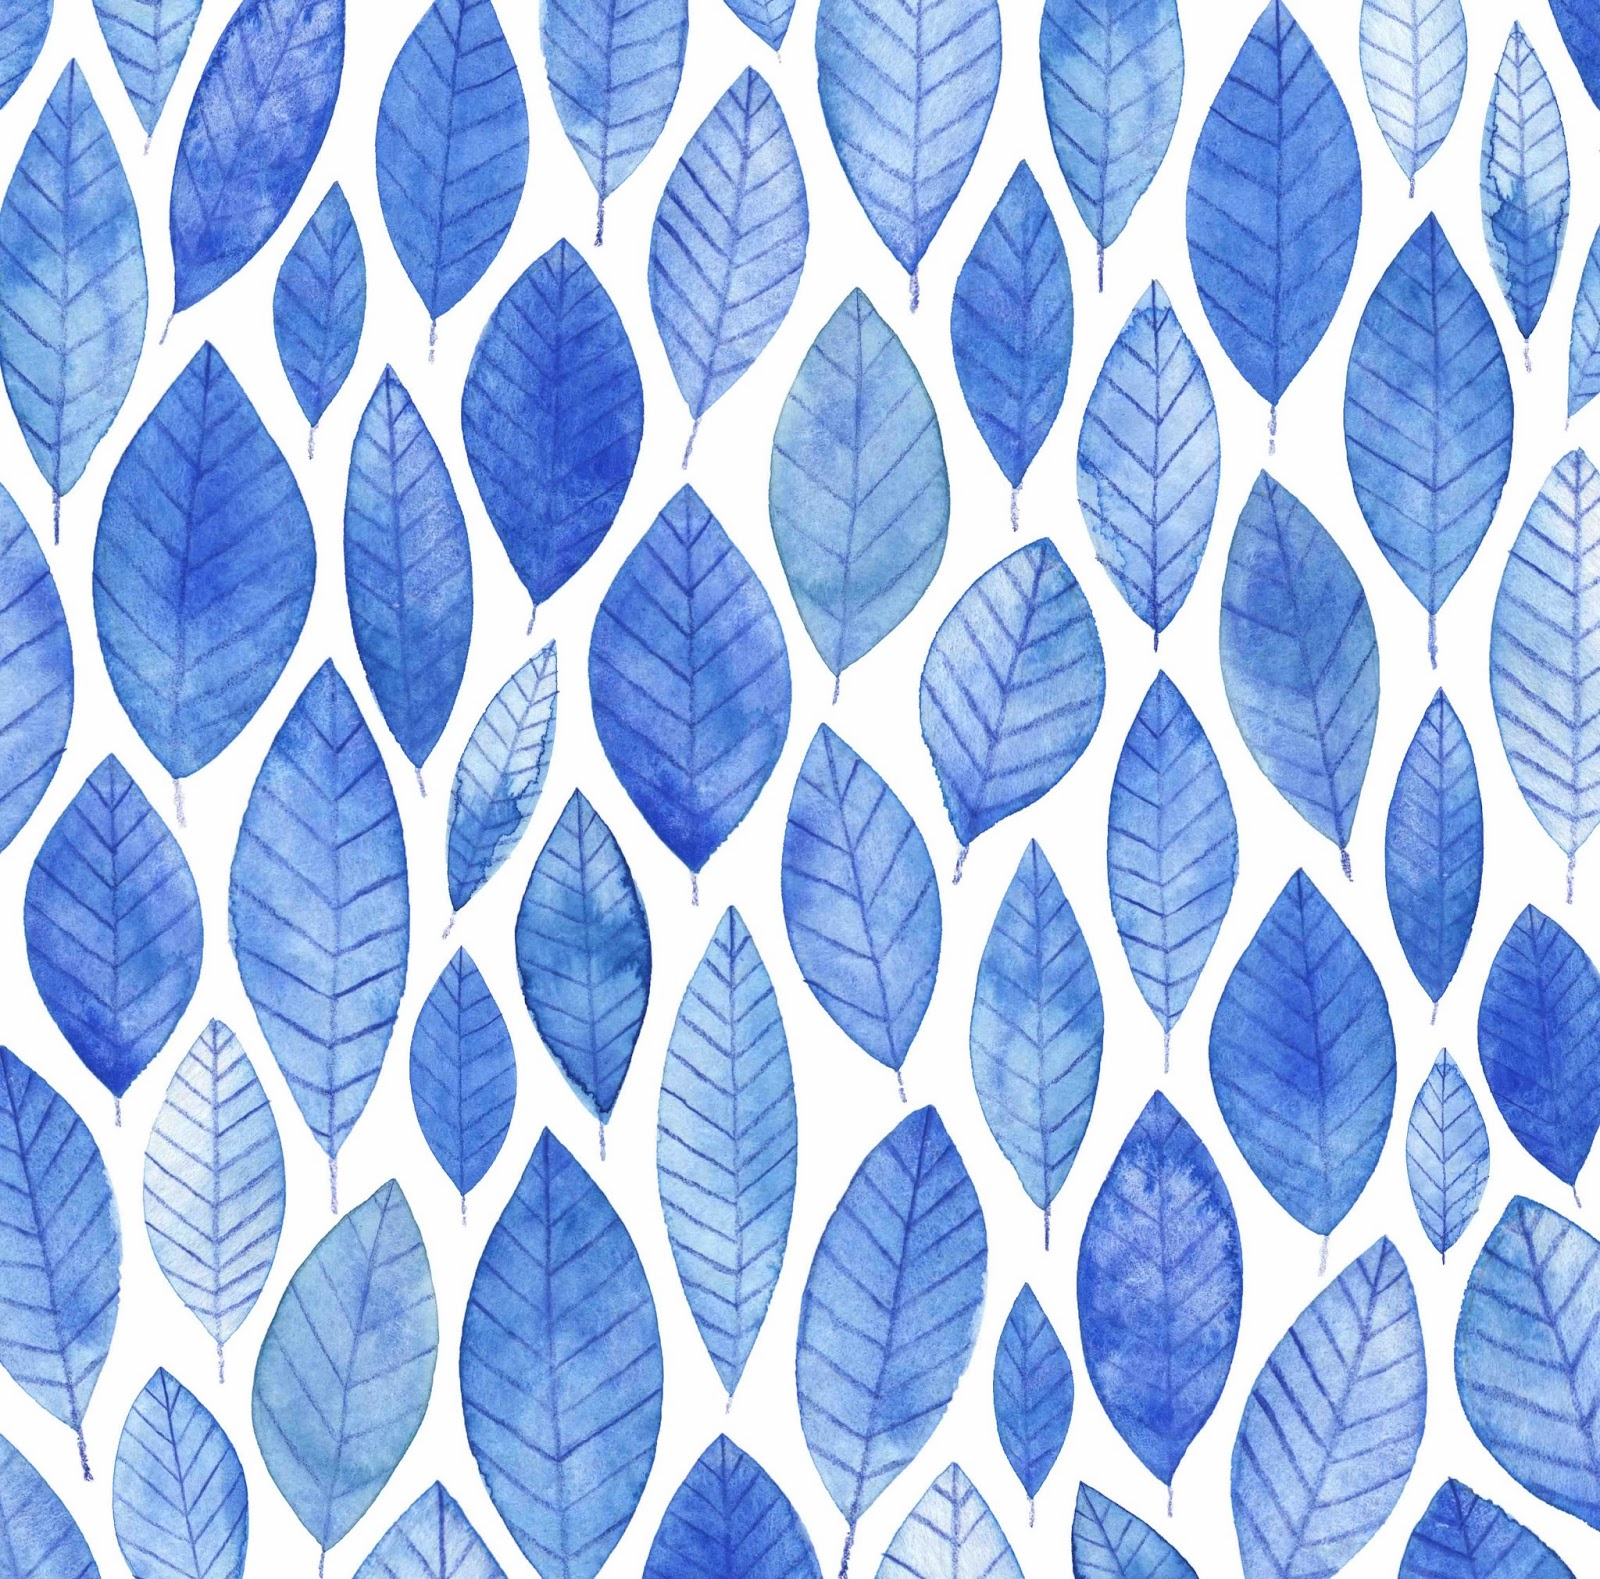 Tumblr Patterns Watercolour Static 6gohf61s0jwossg0